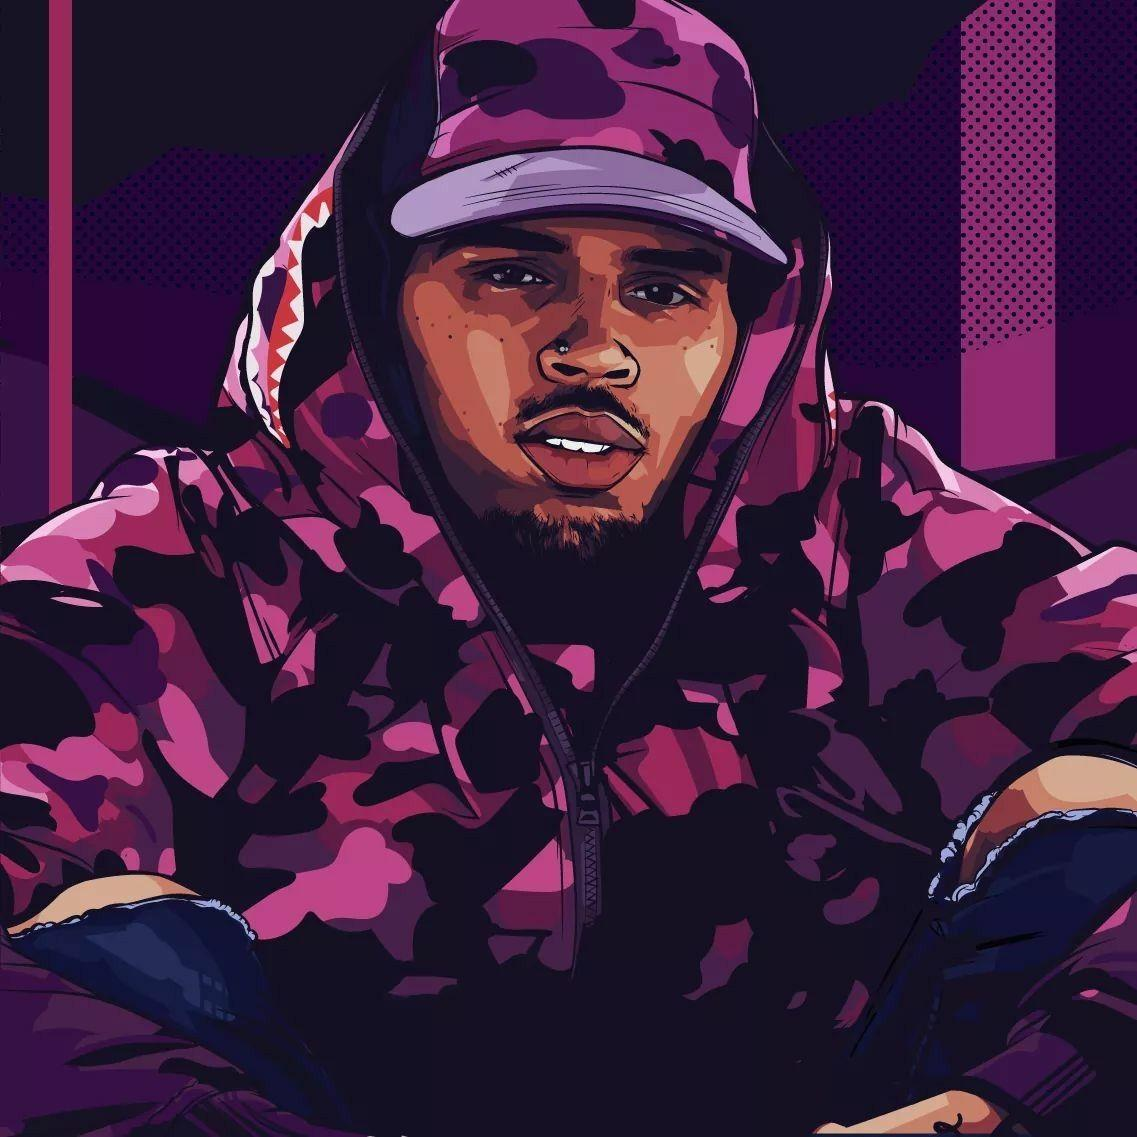 chris brown animated wallpapers wallpaper cave